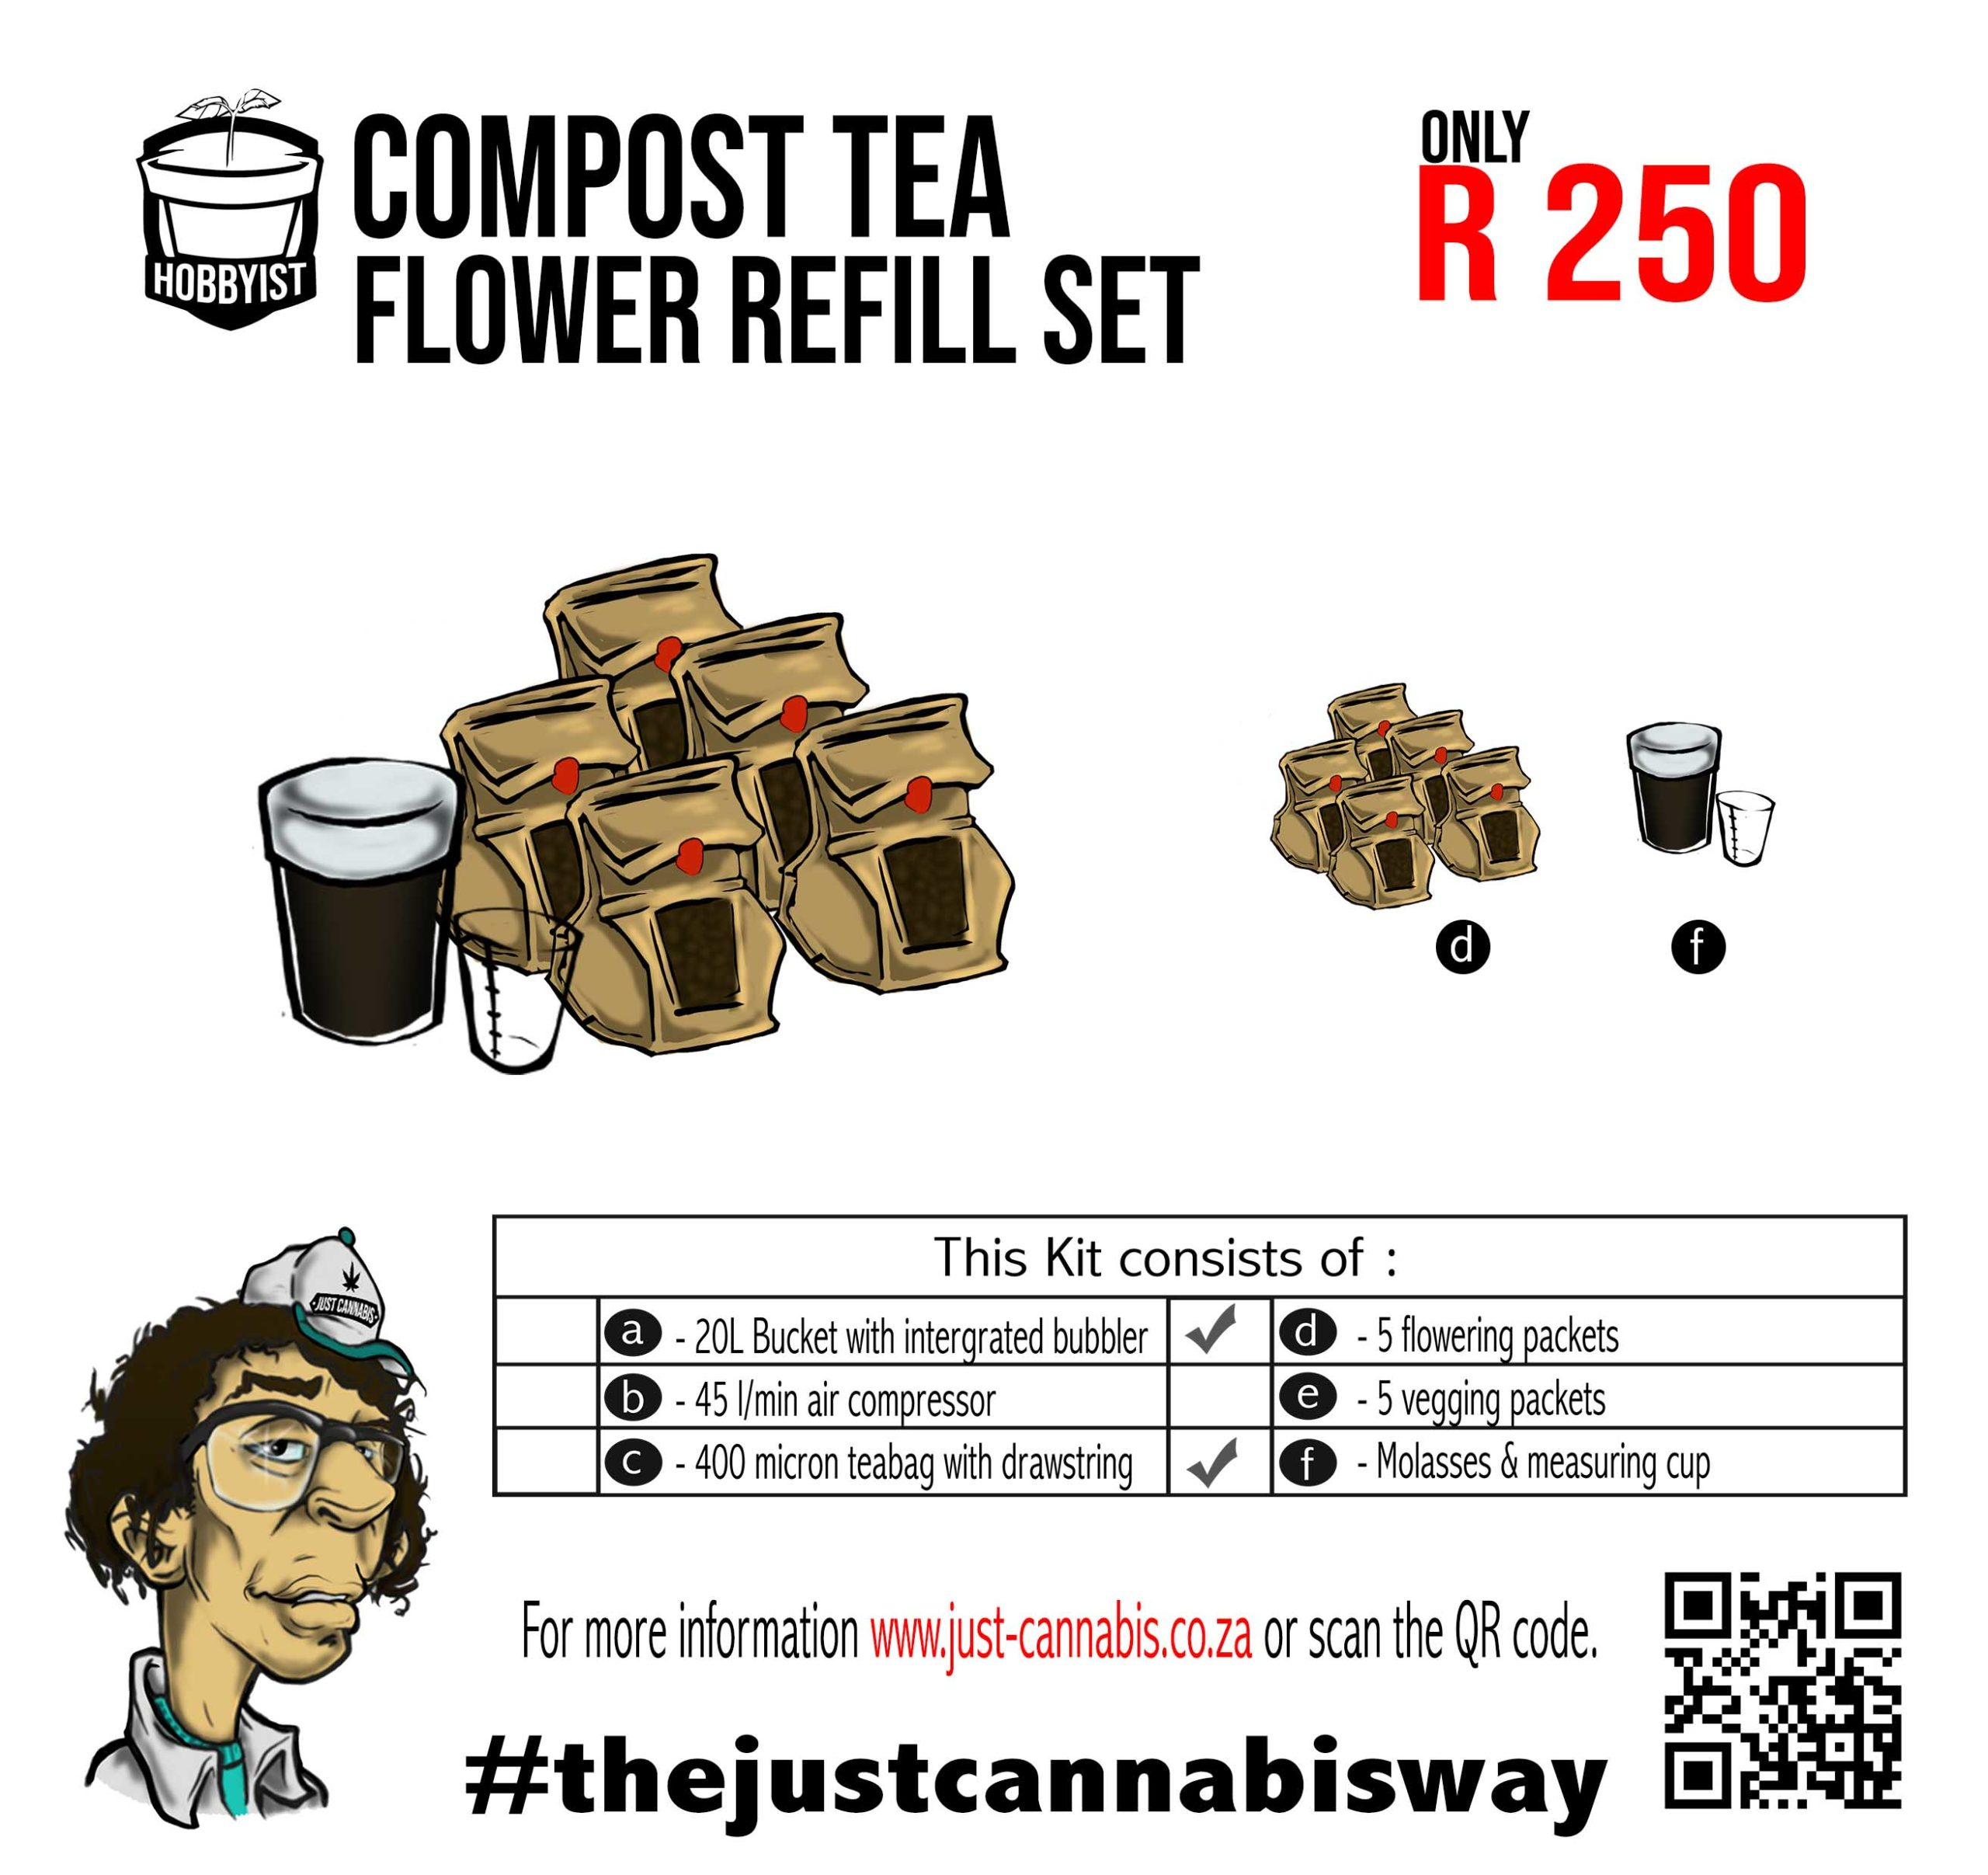 Hobbyist Compost Tea Flower Refill Kit